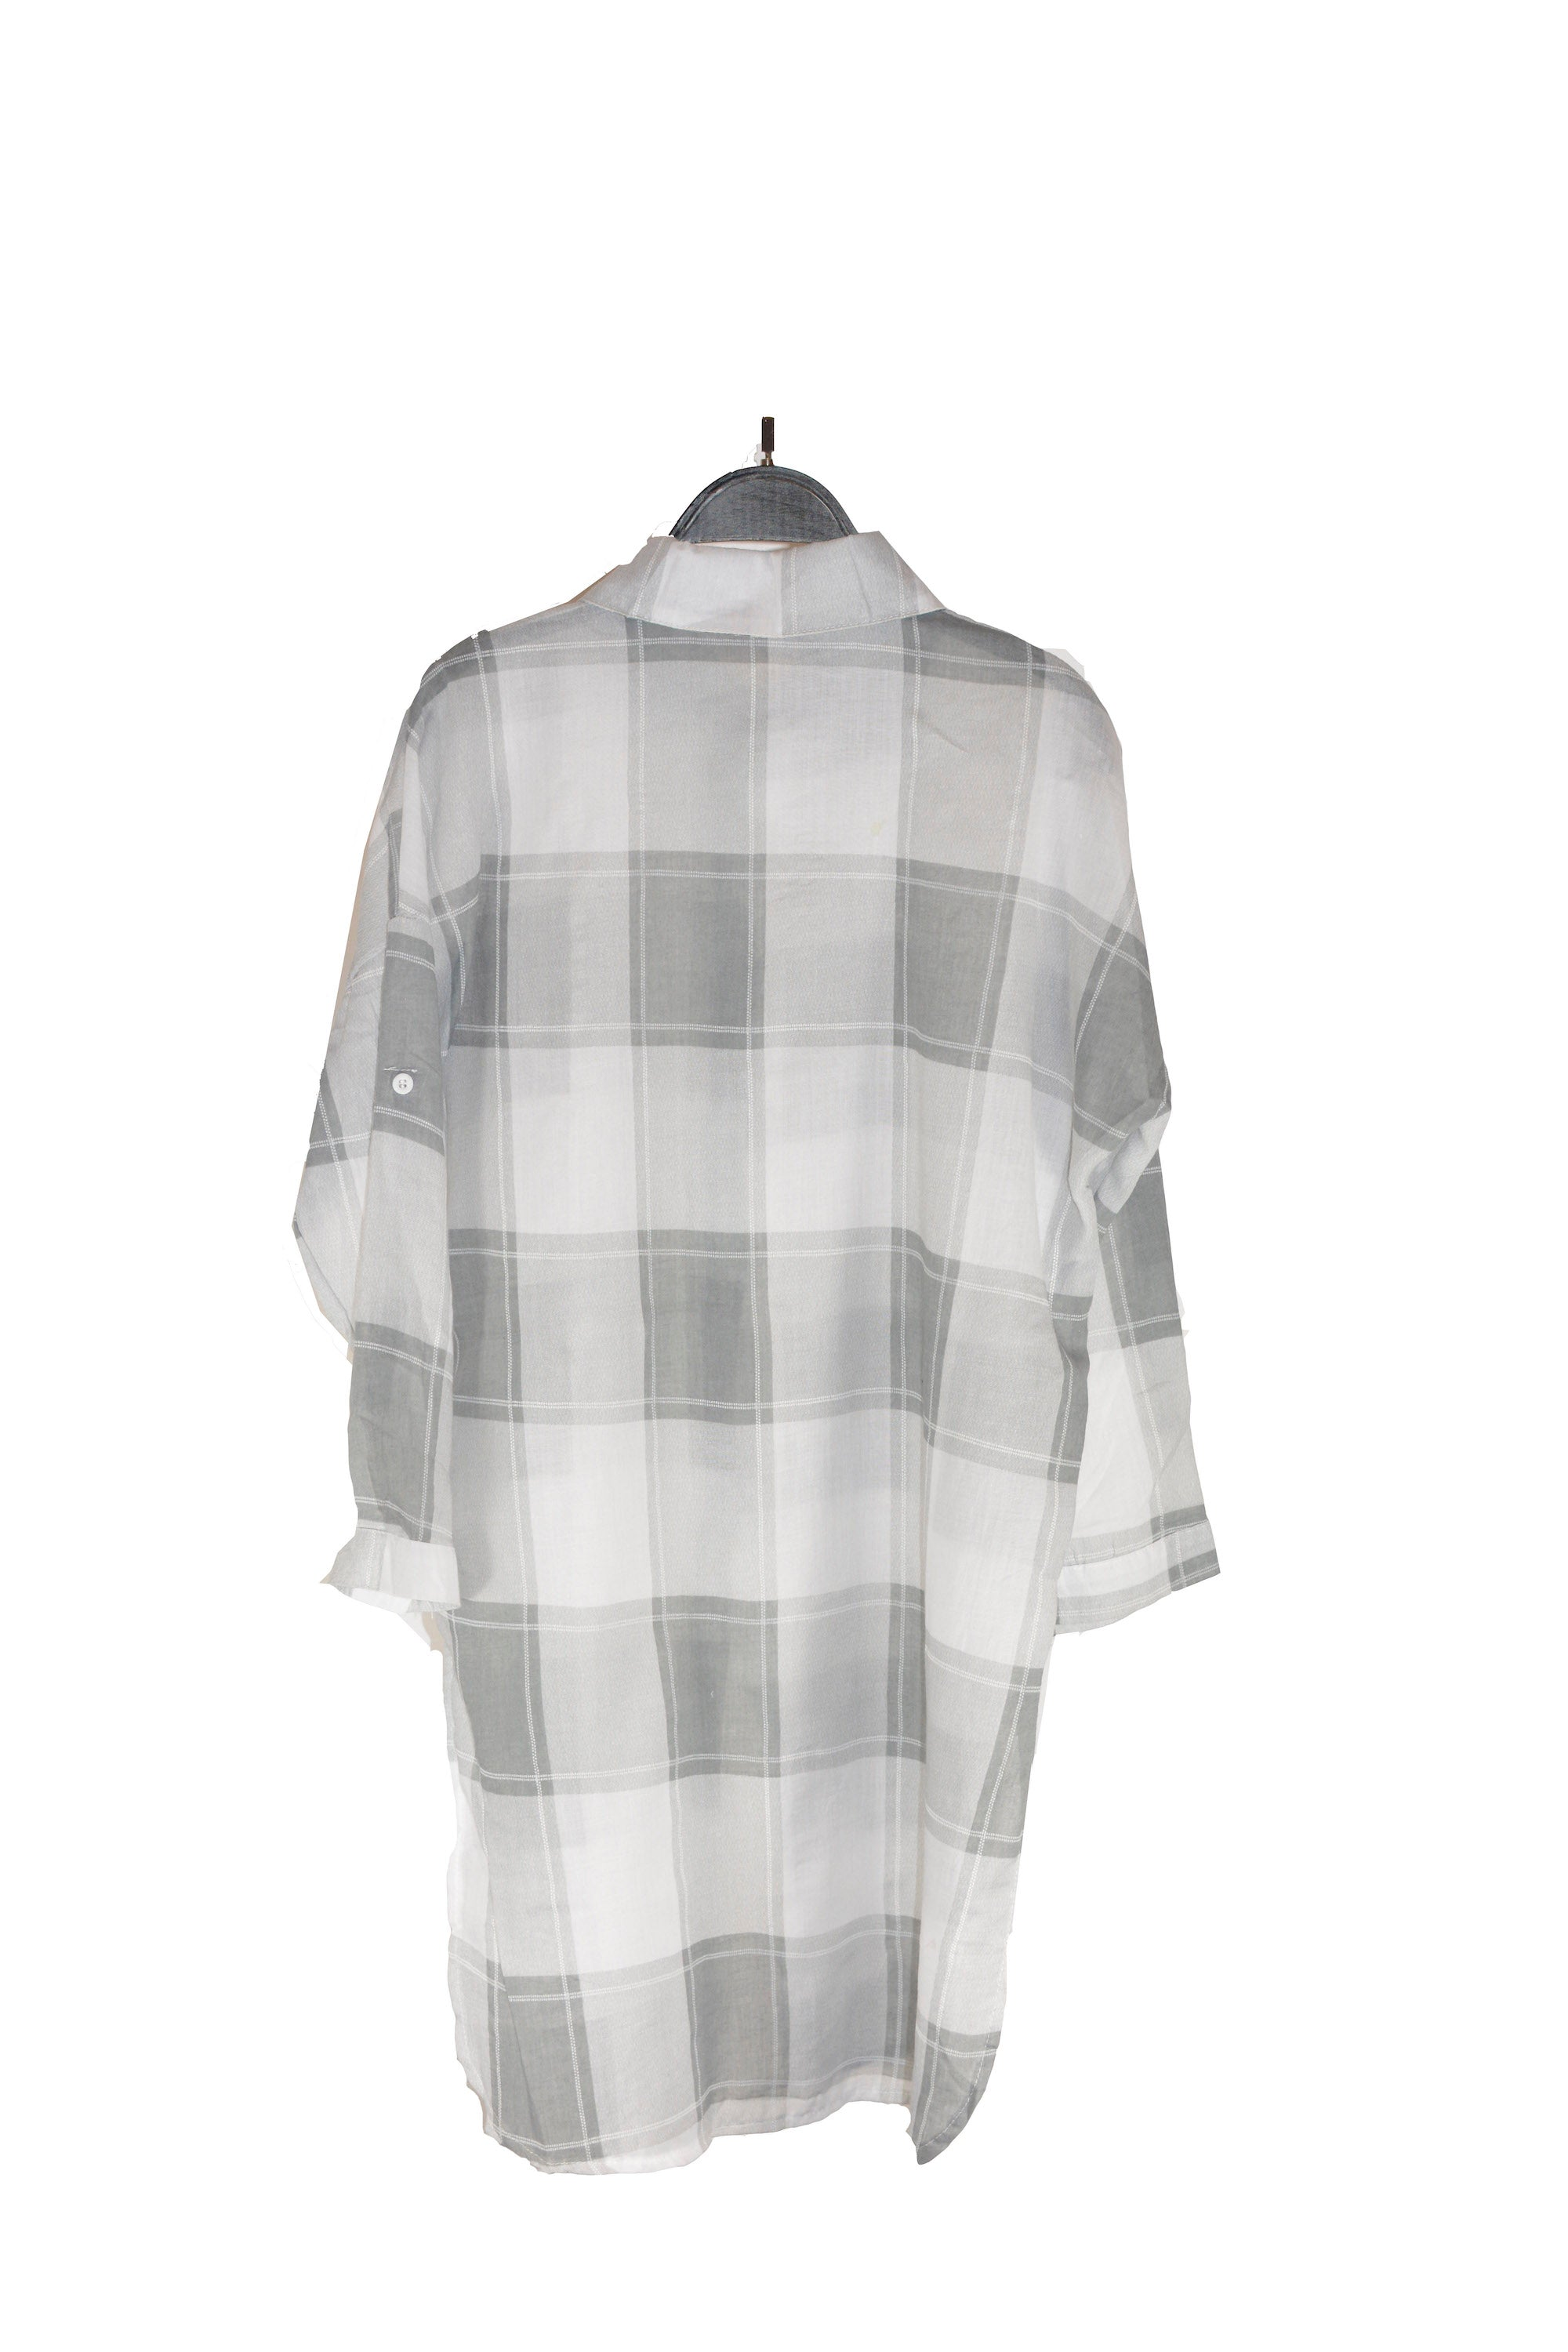 Grey Checkered buttoned-up Shirt